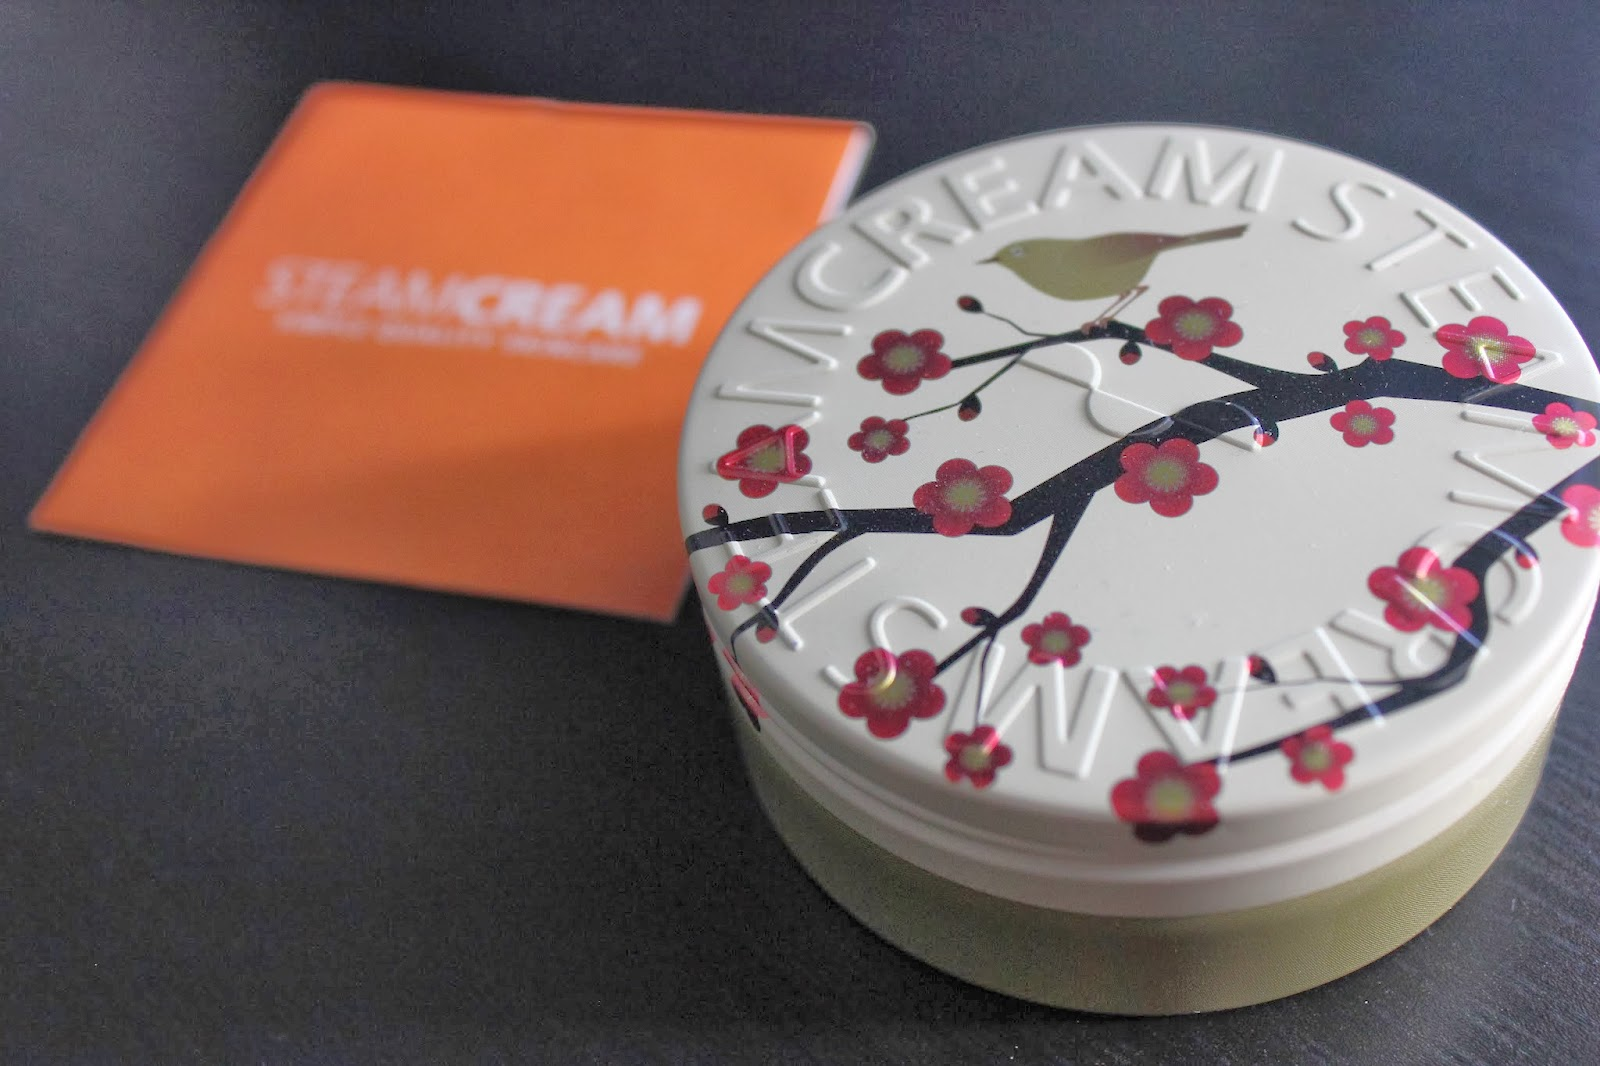 STEAMCREAM Ume ni Uguisu